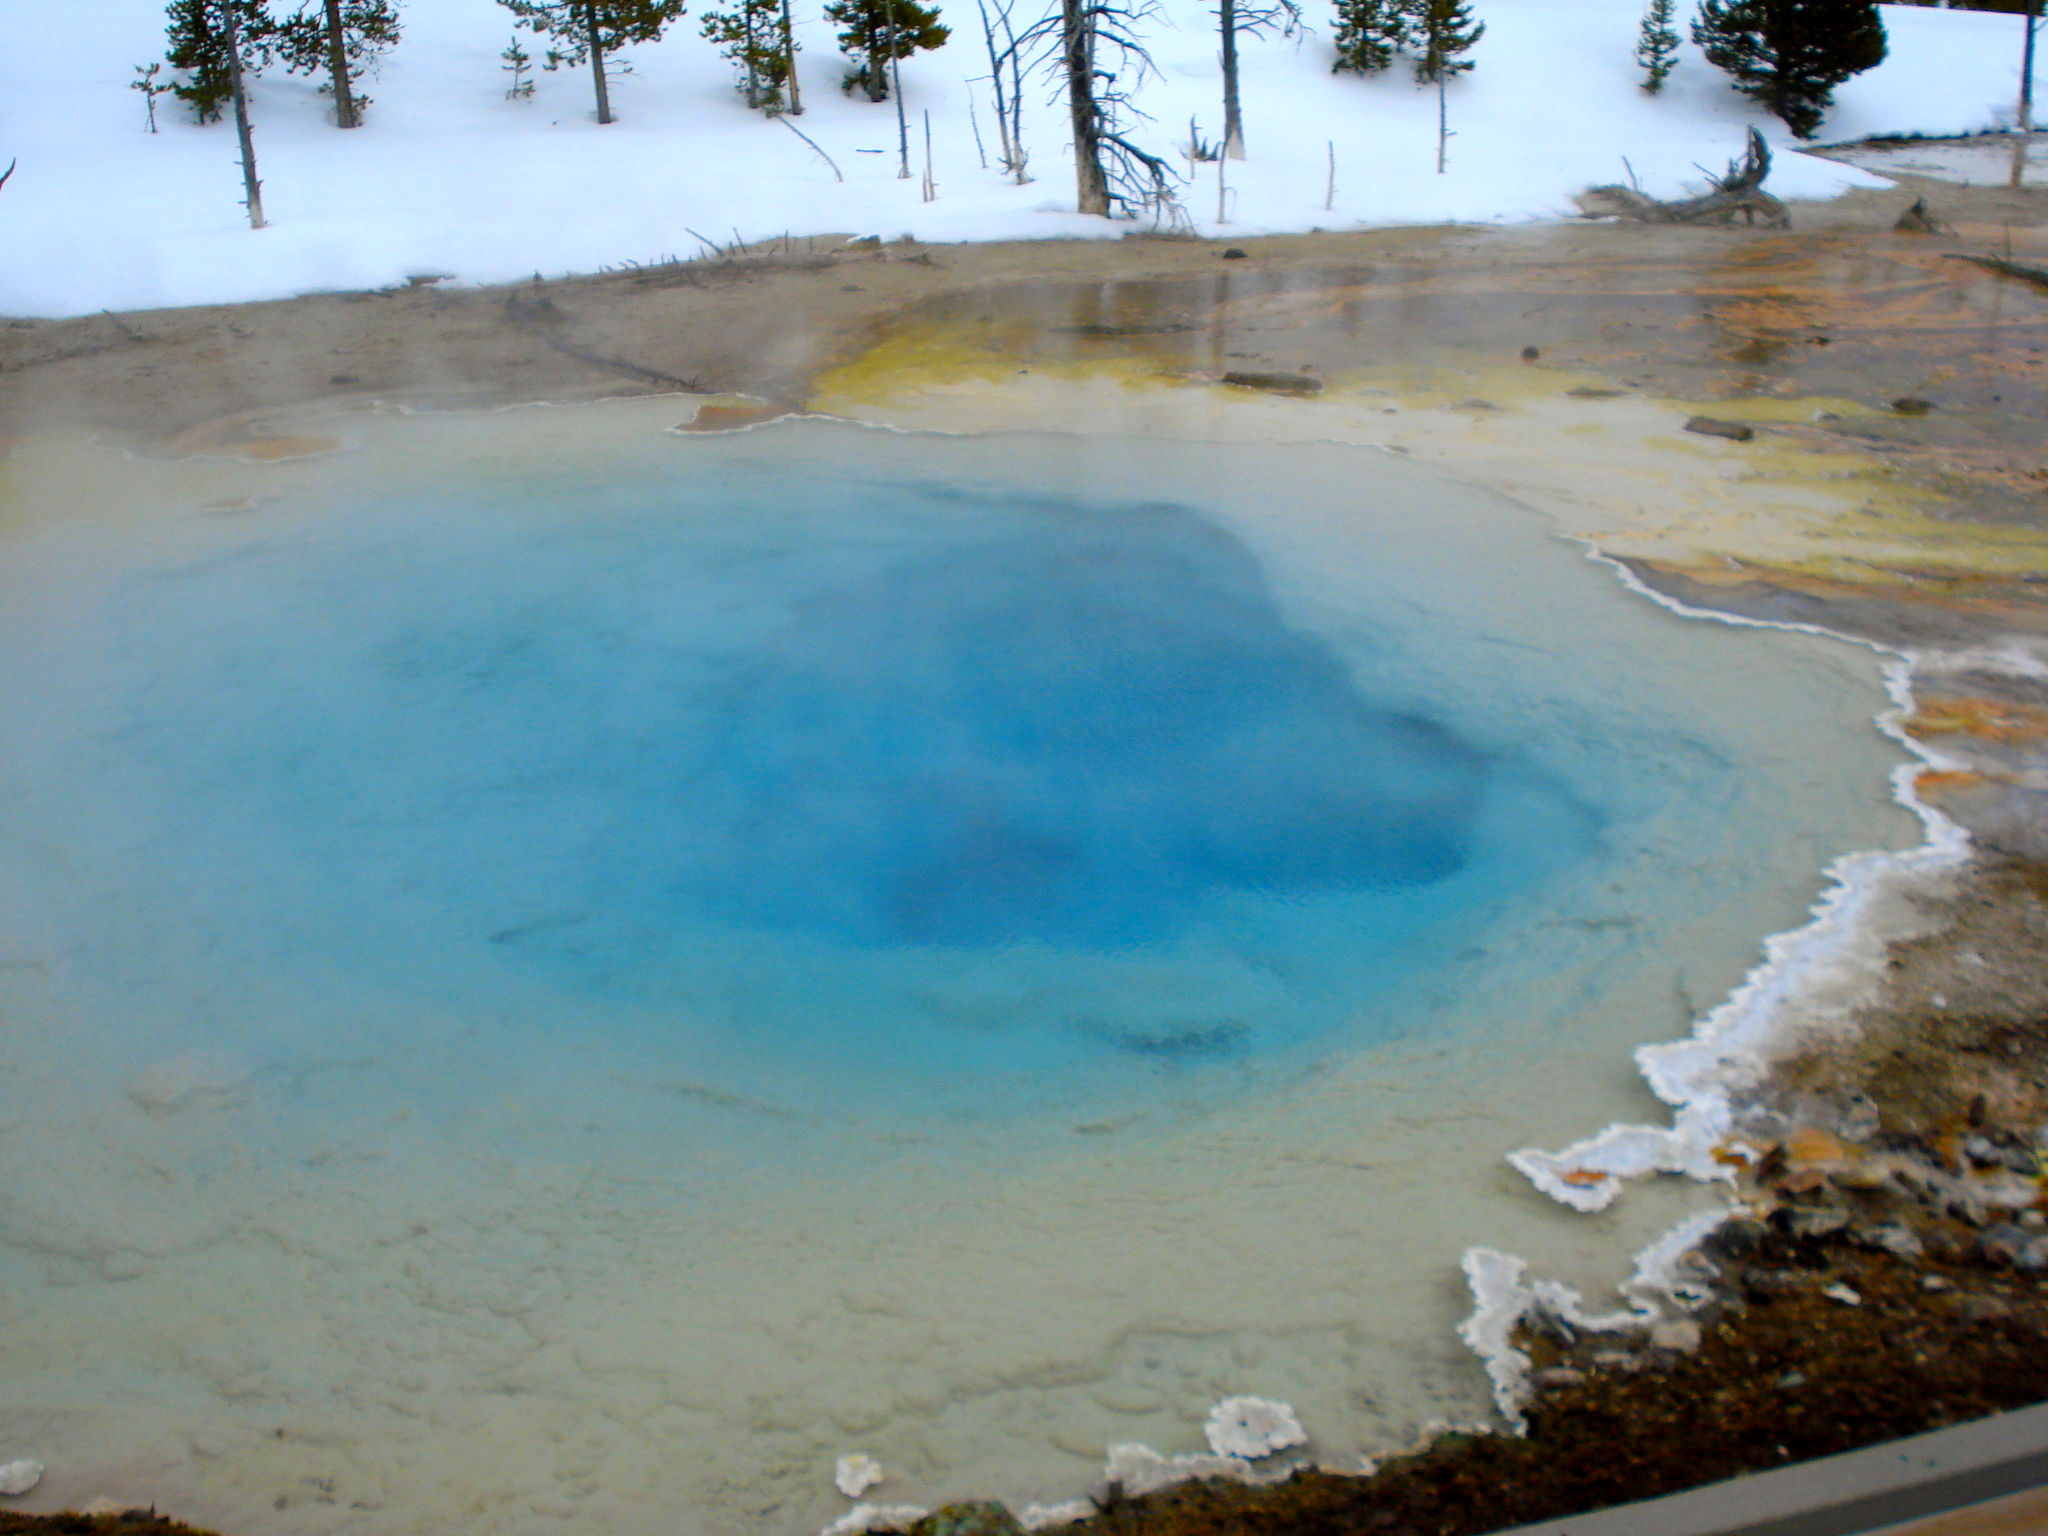 """Intuition cannot be trusted in new environments. Measuring the water temperature would identify this beautiful blue pool in Yellowstone Nat'l Park as a death trap, not a swimming hole.                 0     0     1     28     160     REI     1     1     187     14.0                            Normal     0                     false     false     false         EN-US     JA     X-NONE                                                                                                                                                                                                                                                                                                                                                                                                                                                                                                                                                                                                                                                                                                                    /* Style Definitions */ table.MsoNormalTable {mso-style-name:""""Table Normal""""; mso-tstyle-rowband-size:0; mso-tstyle-colband-size:0; mso-style-noshow:yes; mso-style-priority:99; mso-style-parent:""""""""; mso-padding-alt:0in 5.4pt 0in 5.4pt; mso-para-margin:0in; mso-para-margin-bottom:.0001pt; mso-pagination:widow-orphan; font-size:12.0pt; font-family:Cambria; mso-ascii-font-family:Cambria; mso-ascii-theme-font:minor-latin; mso-hansi-font-family:Cambria; mso-hansi-theme-font:minor-latin;}"""